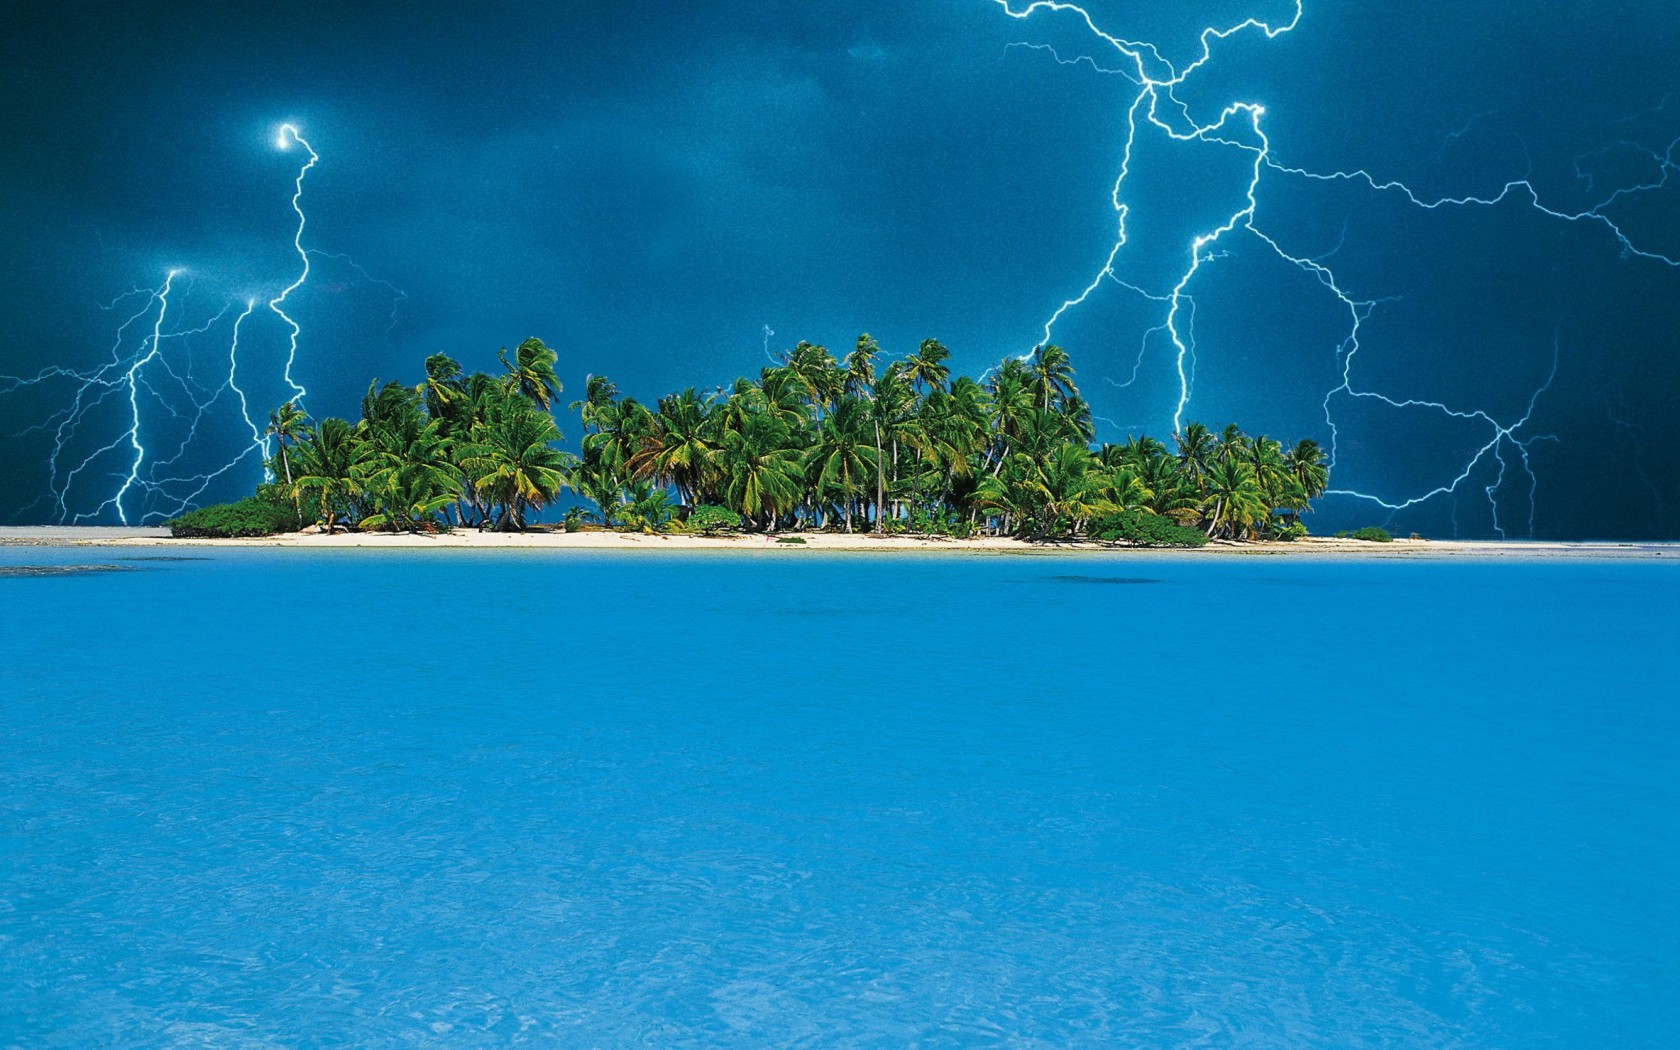 Wallpaper 17755 nature lightning storm over tropical islandjpg 889 1680x1050